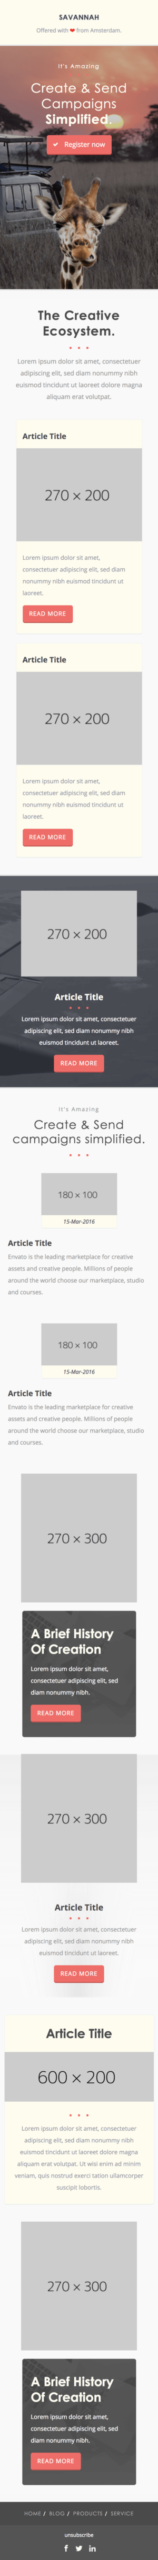 Responsive HTML Email templates - Get them customized to your needs